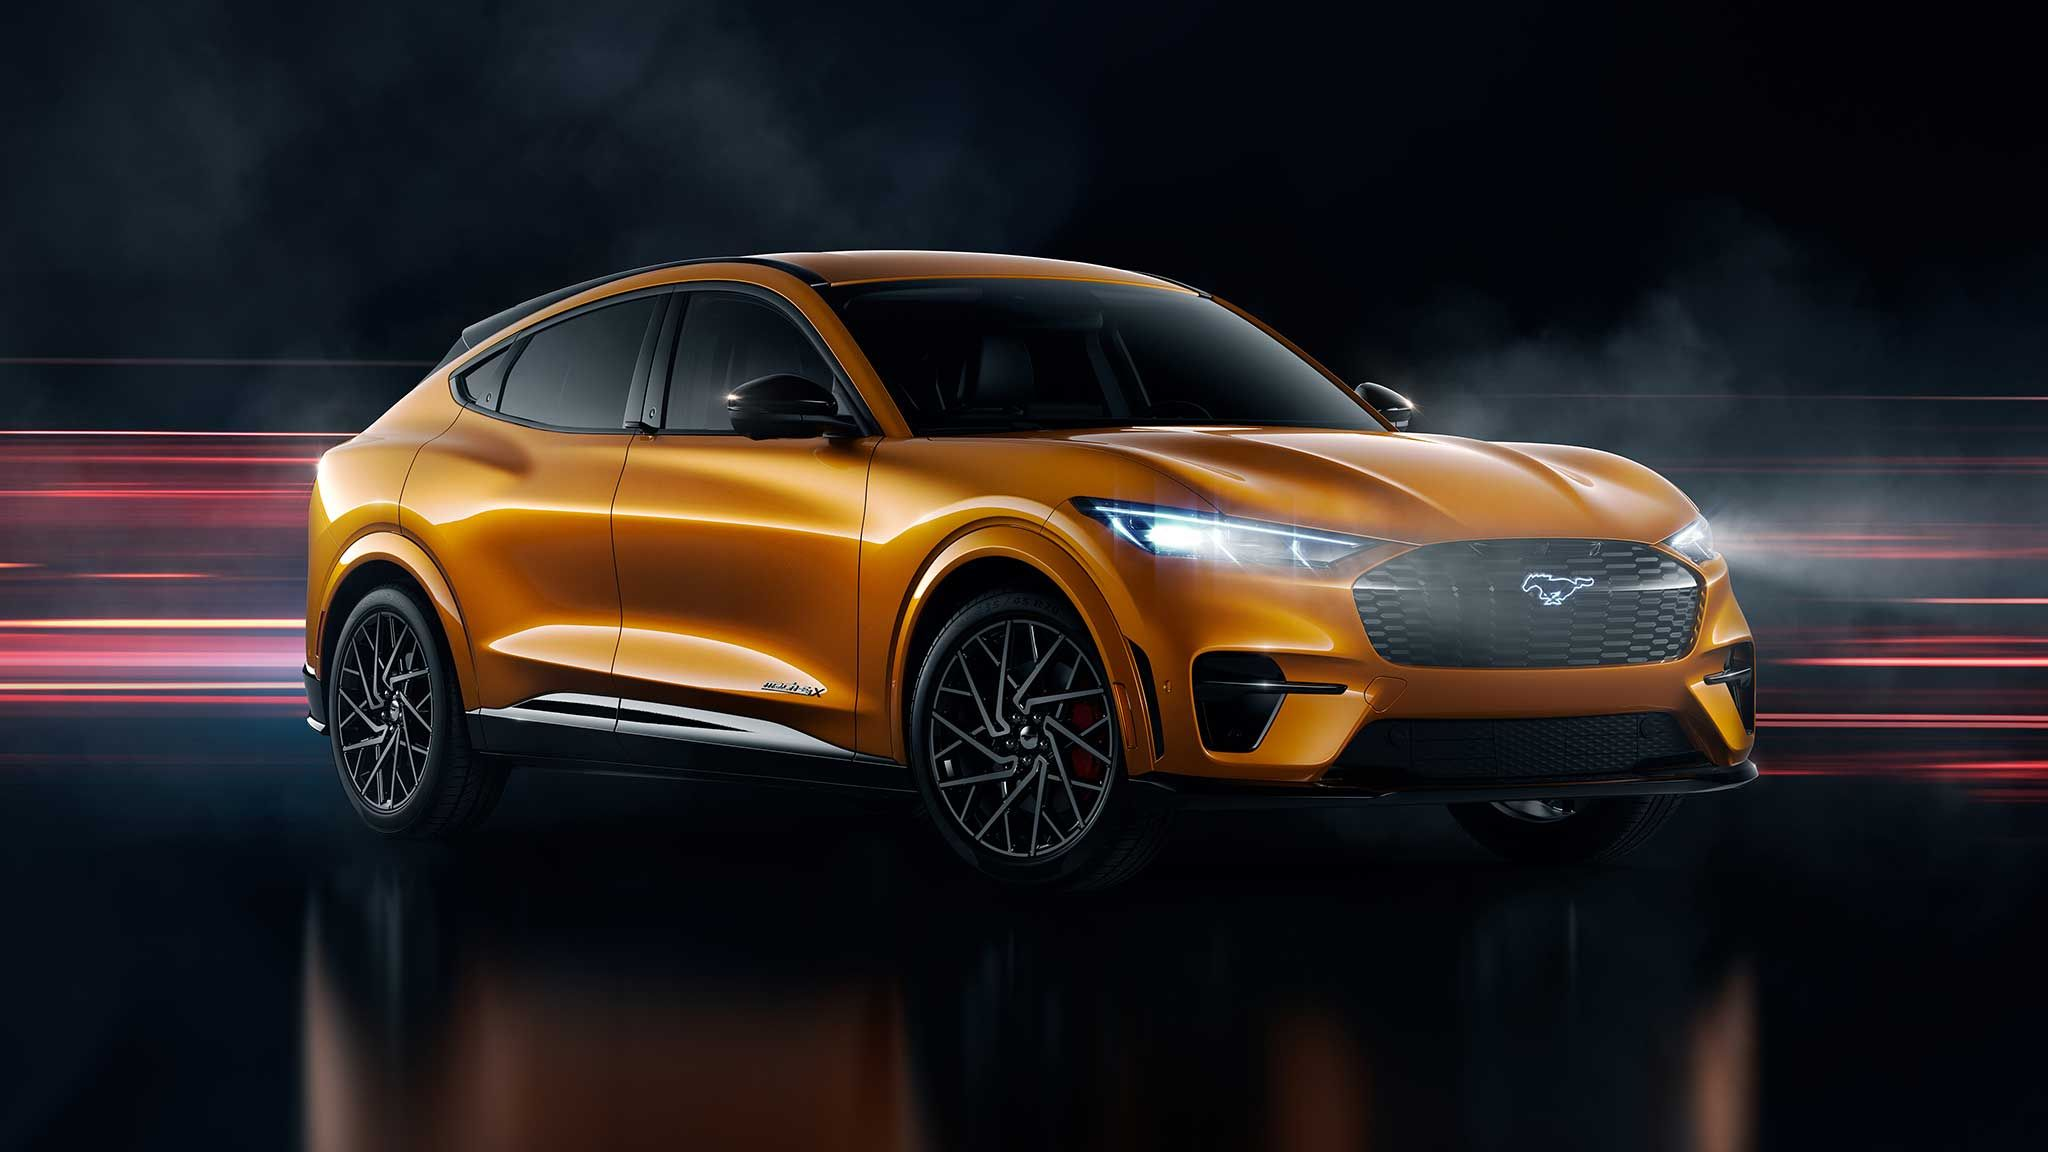 2021 Ford Mustang Mach E Gt Is Now Available With Cyber Orange Paint In 2020 Ford Mustang Mustang Ford